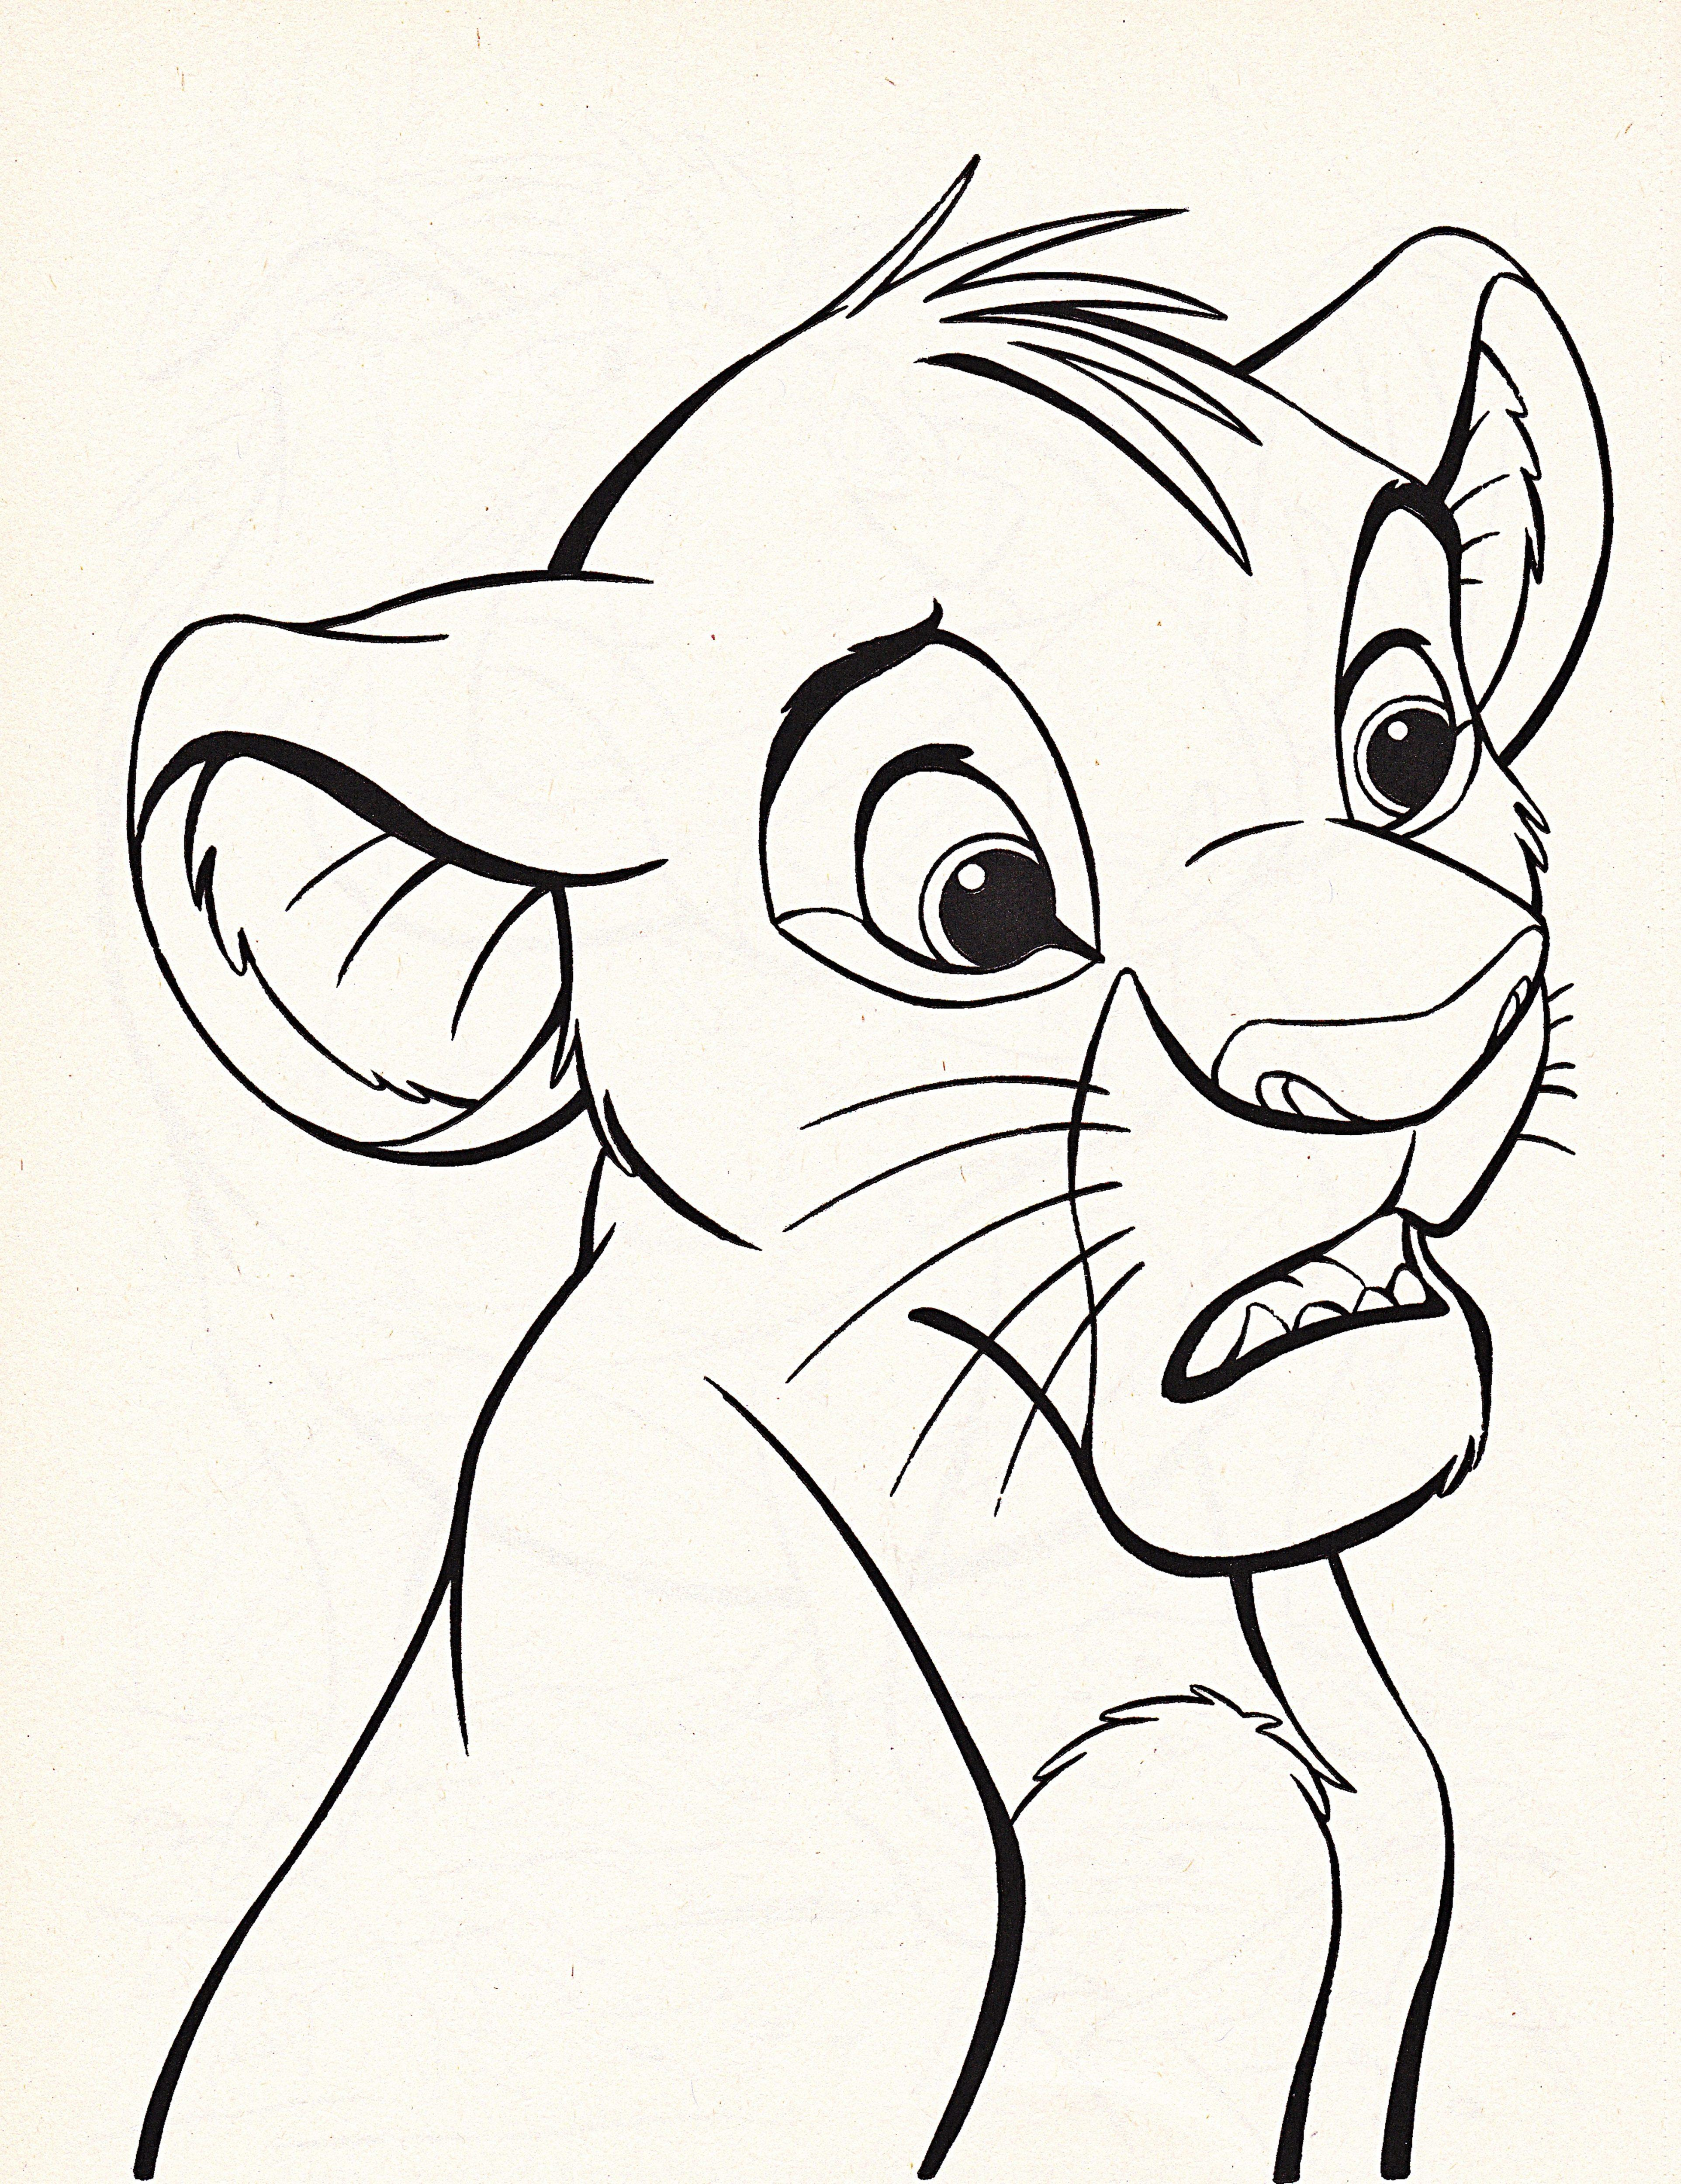 Disney Channel Drawing at GetDrawings.com | Free for personal use ...